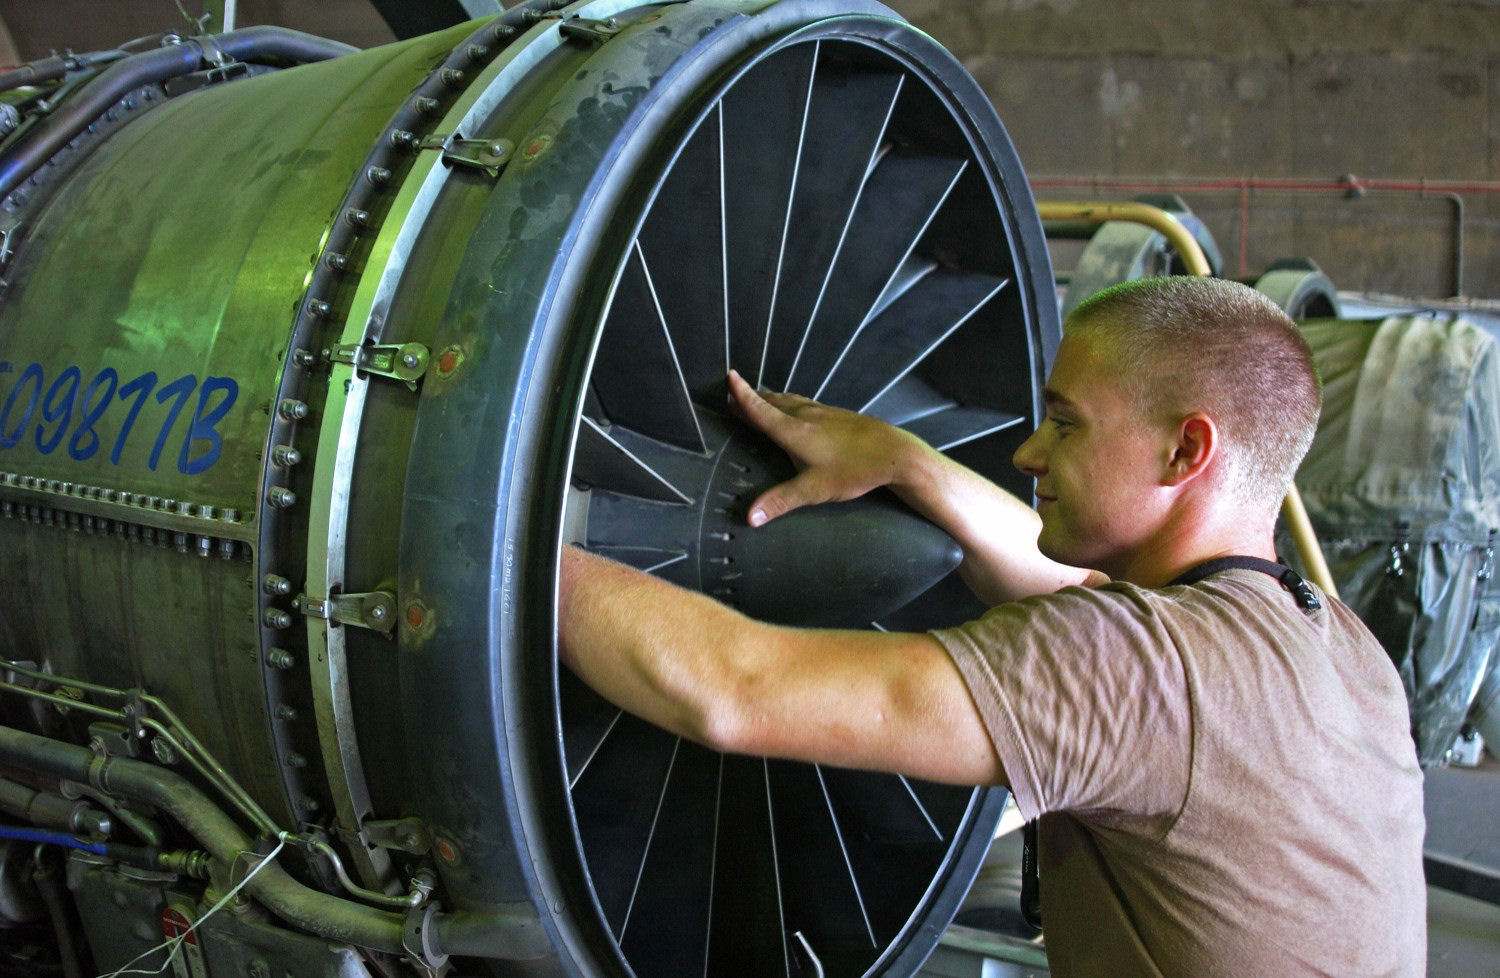 Is It Aircraft Maintenance Engineering Or Aeronautical